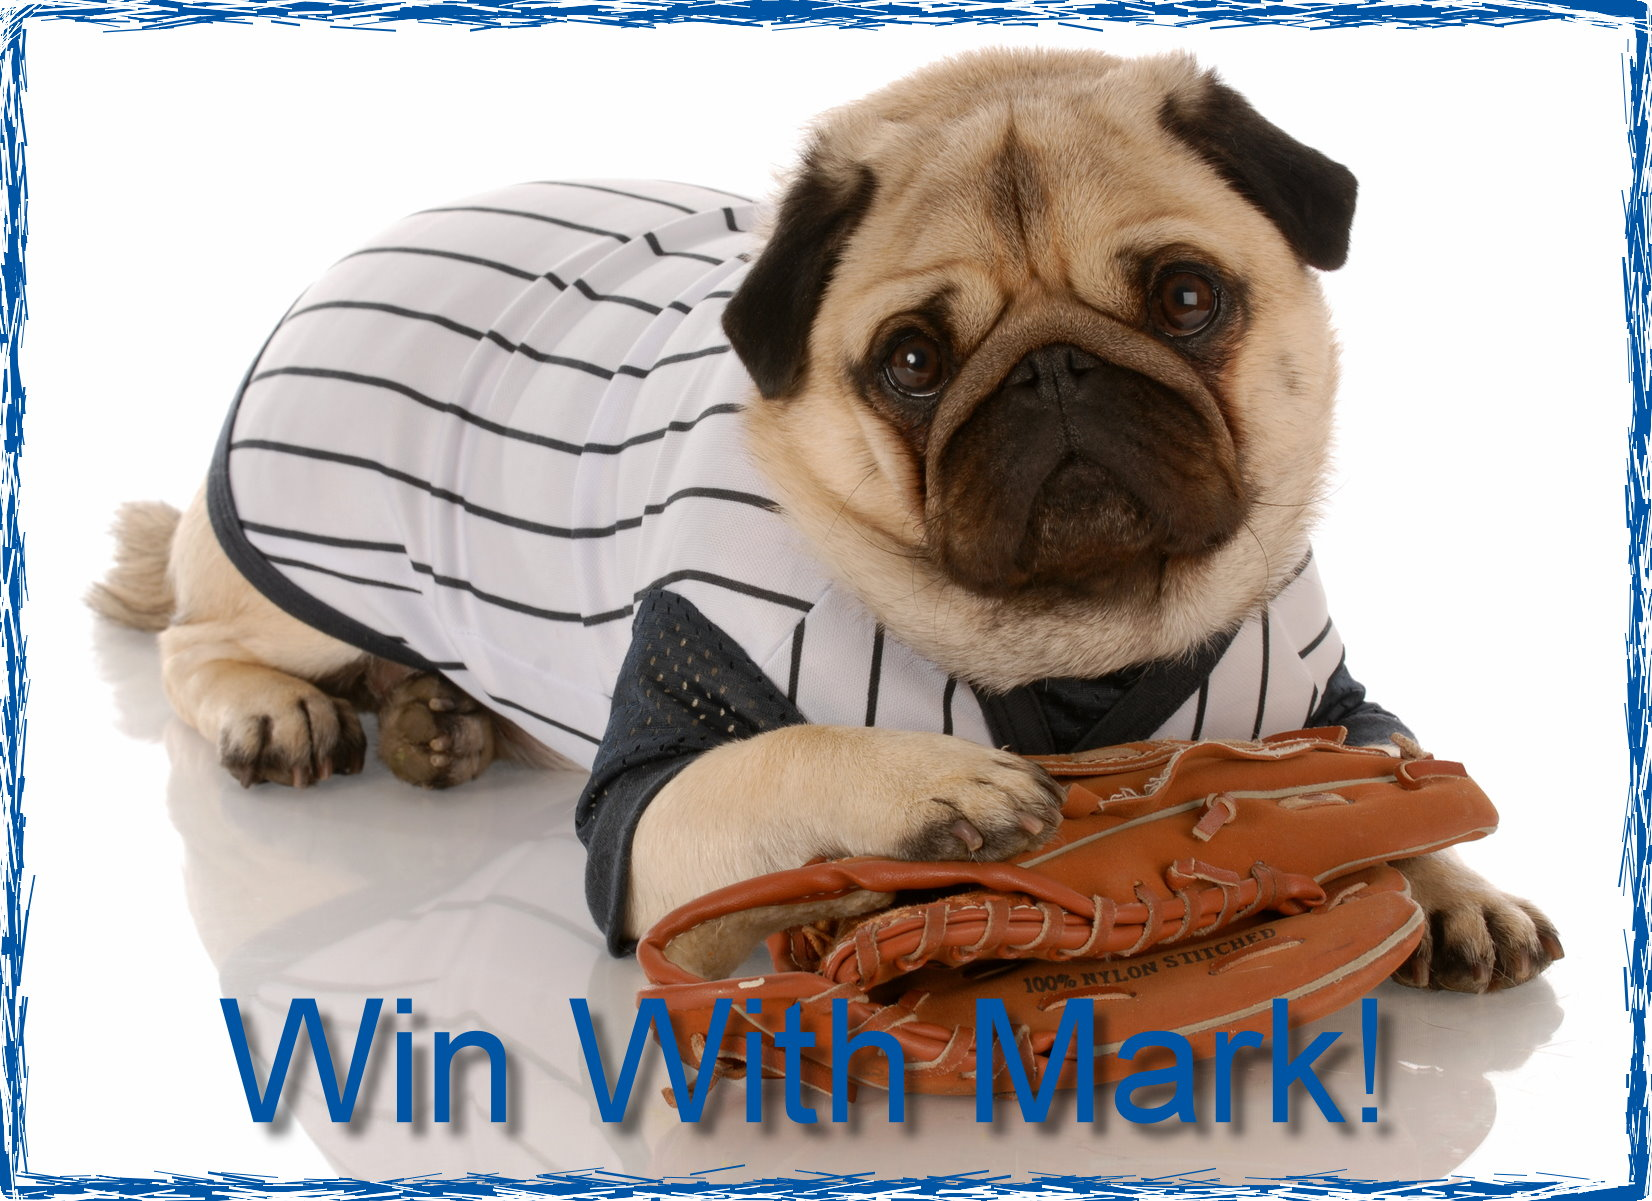 Win With Mark!